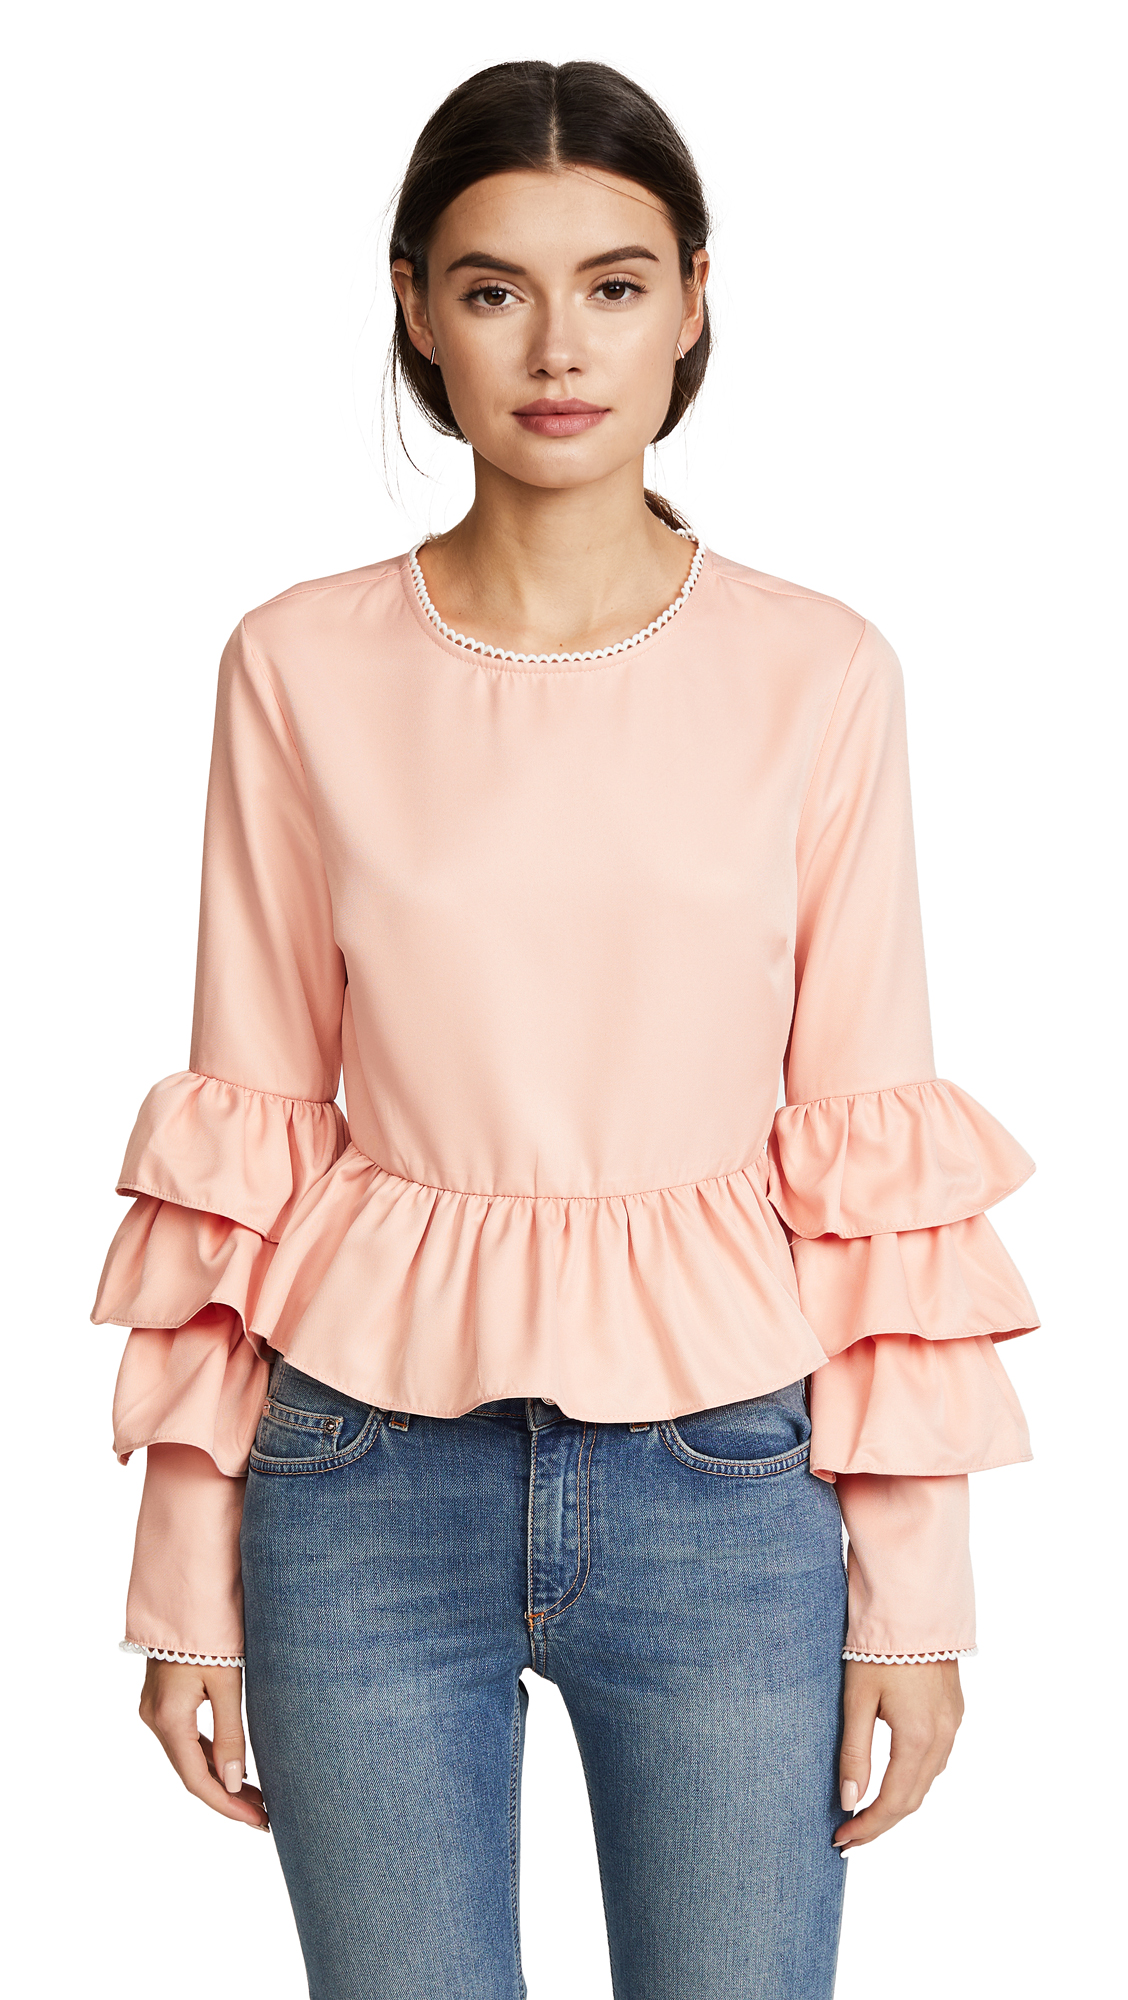 endless rose Tiered Ruffle Sleeve Peplum Blouse - Nude Pink